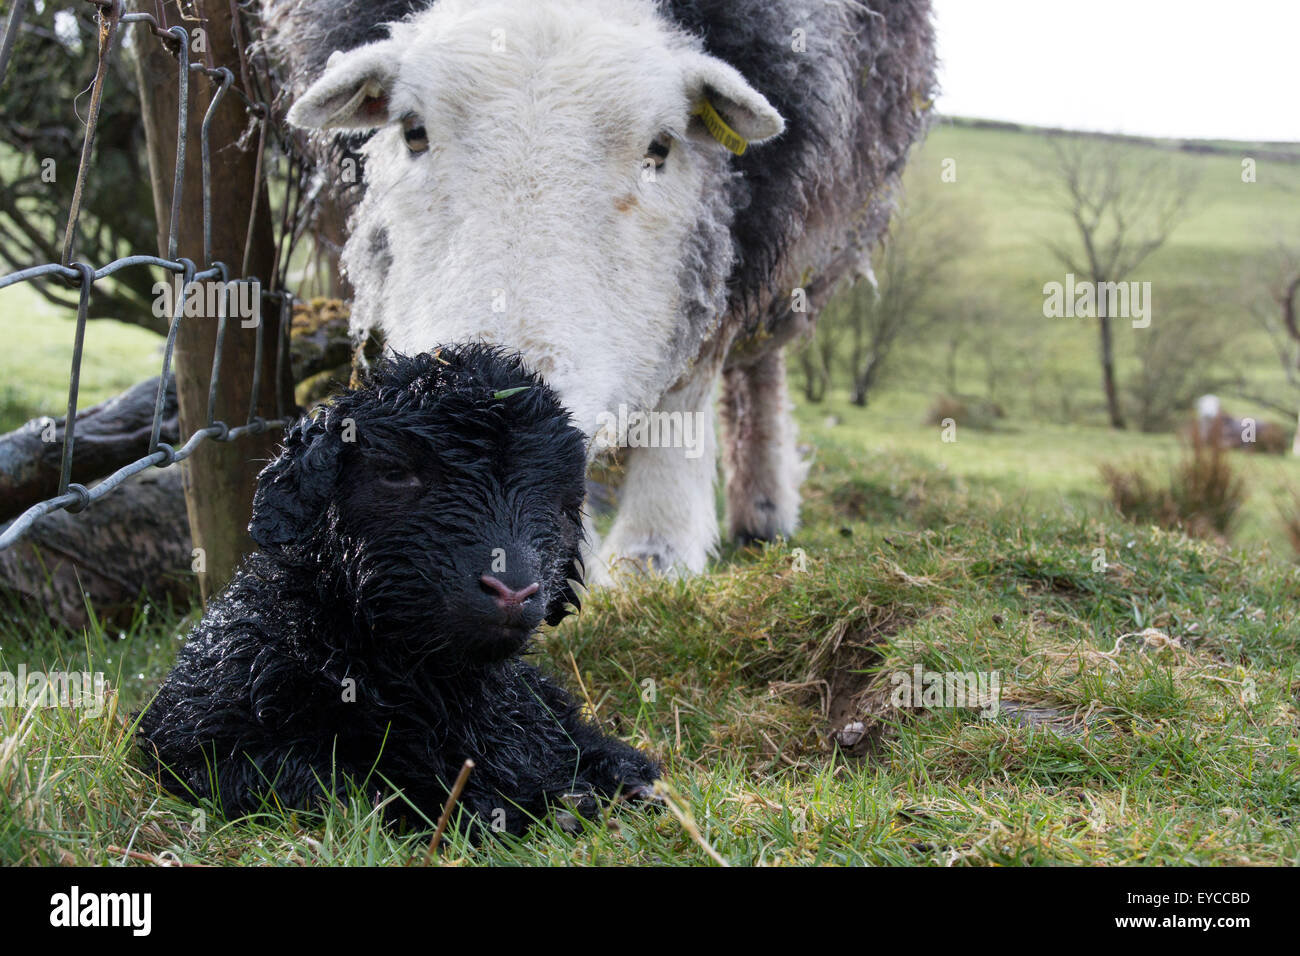 Herdwick ewe with newborn lamb, Cumbria, UK - Stock Image